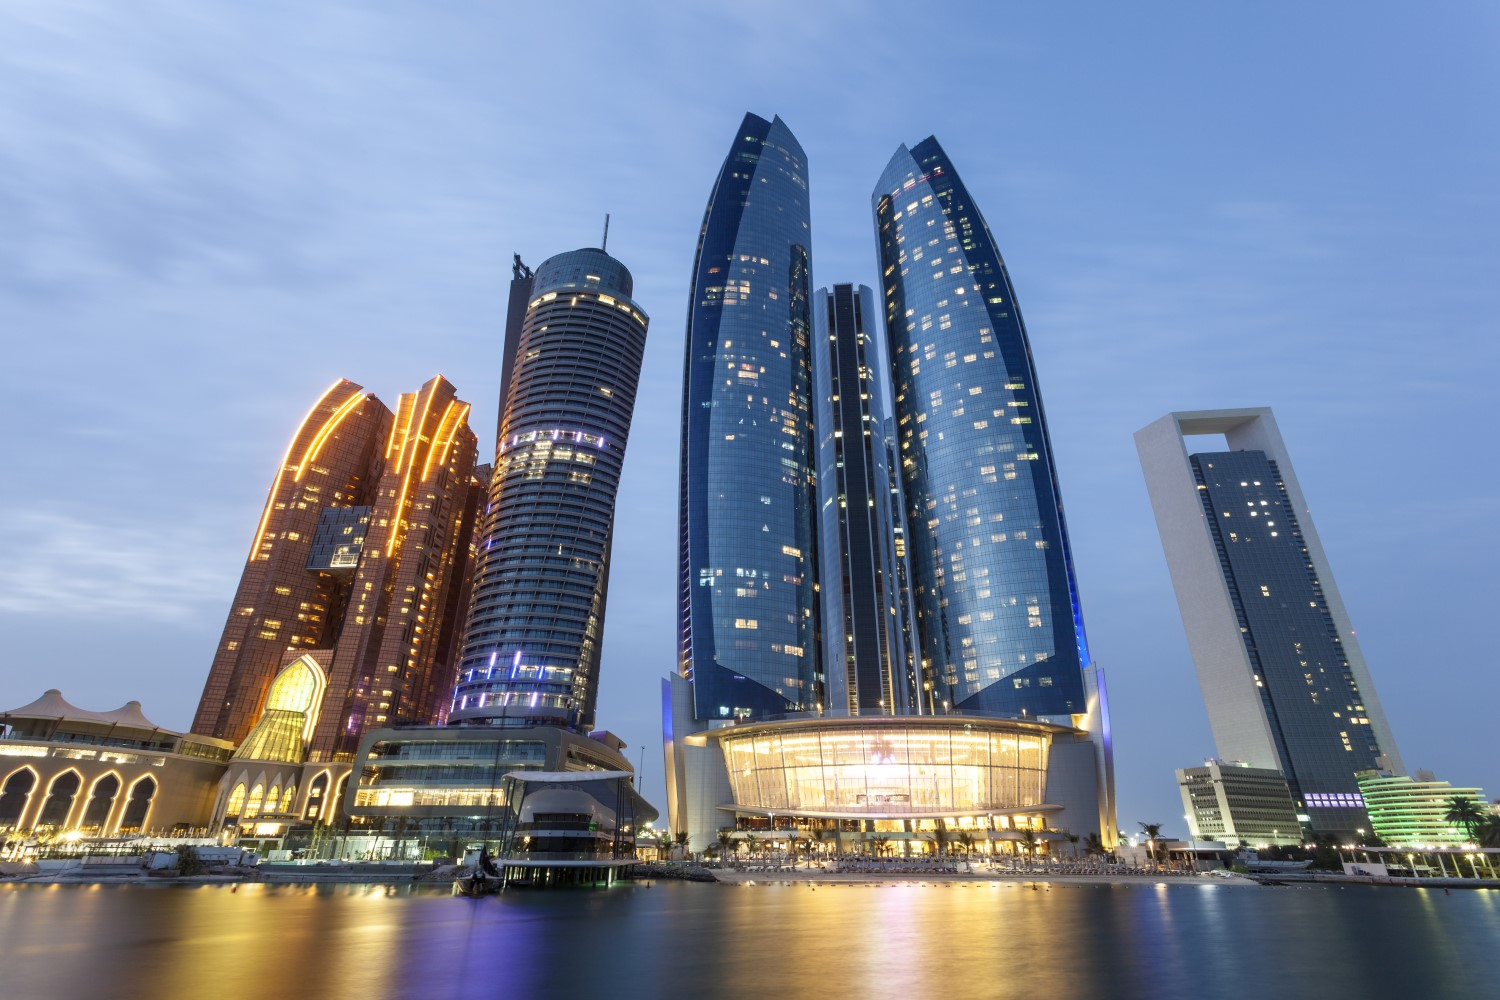 Abu Dhabi government's investment arm uses blockchain to issue $500 million worth Islamic bond